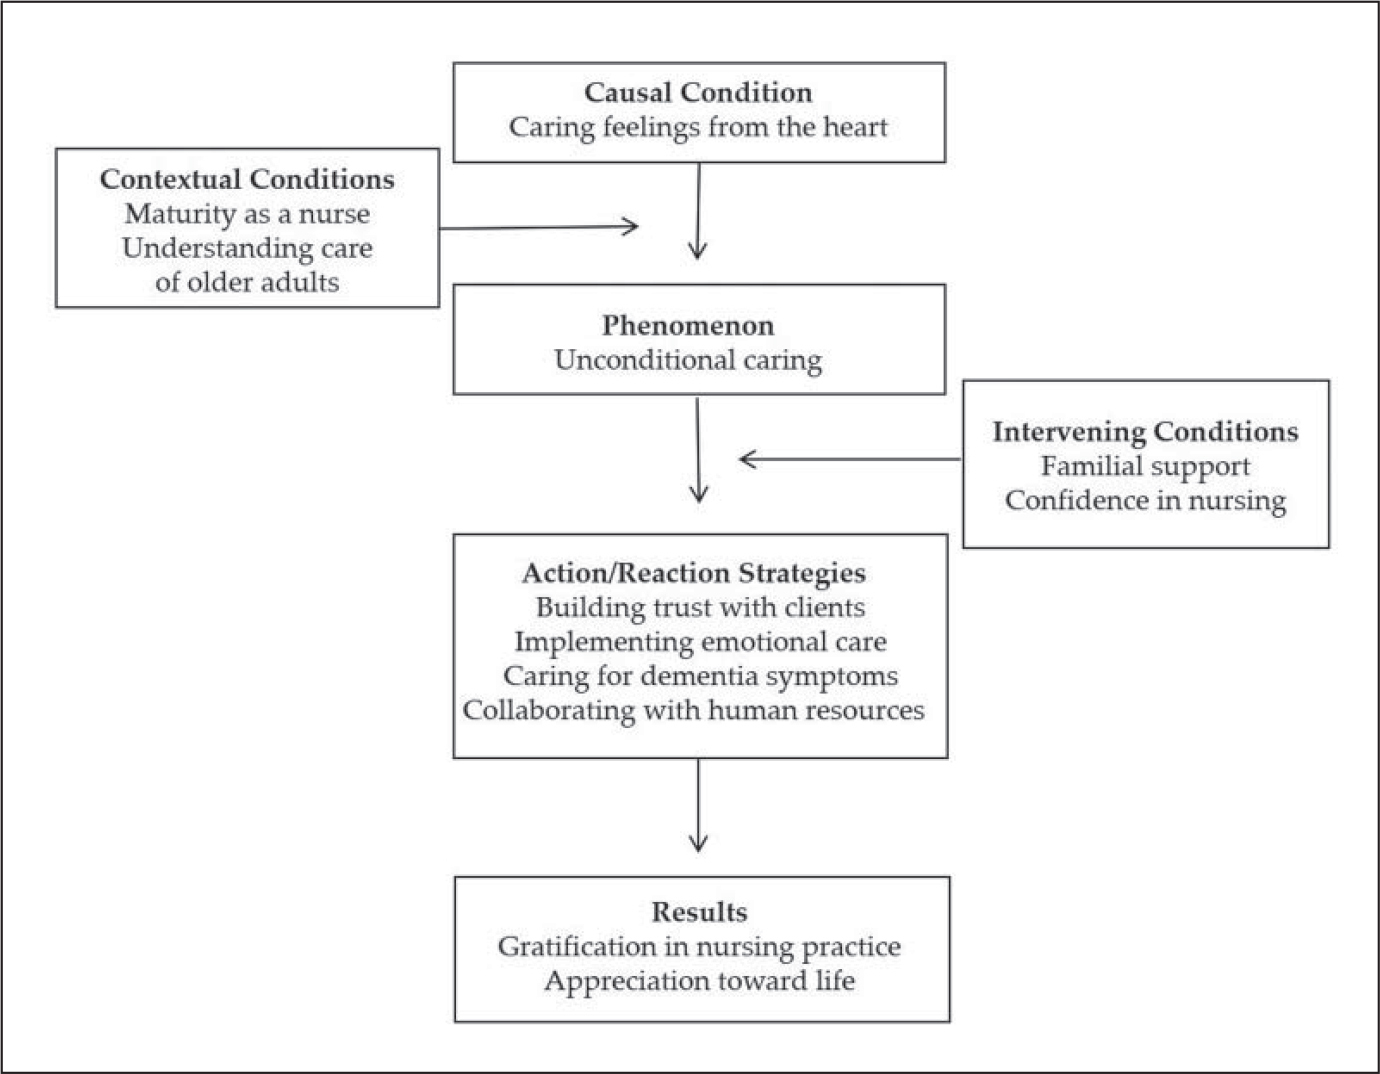 Paradigm model of nurses' positive experiences in caring for older adults with dementia.